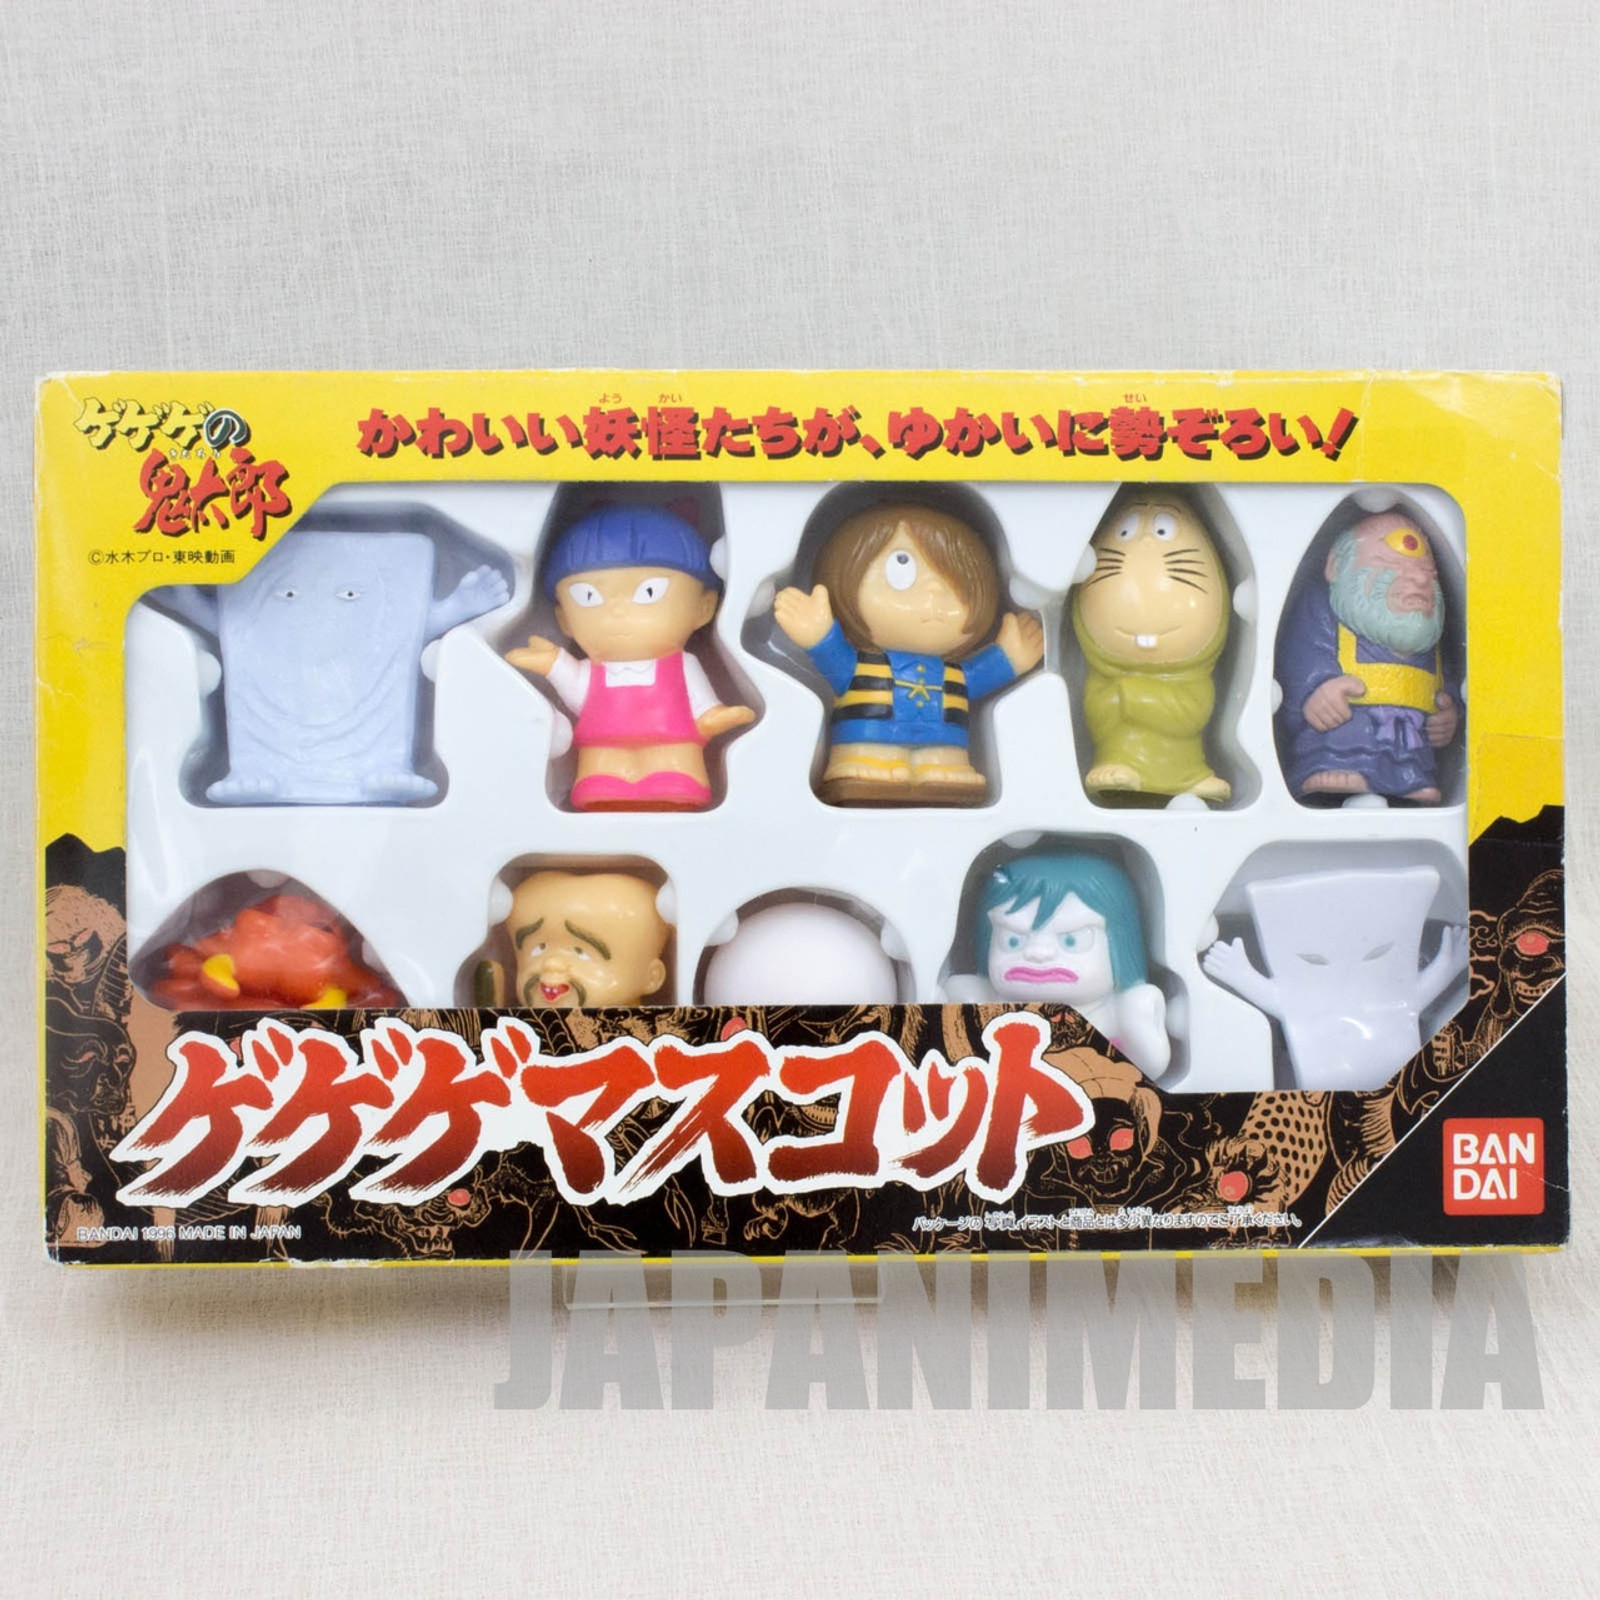 Gegege no Kitaro Soft Vinyl Mascot Figure 10pc Set BANDAI JAPAN ANIME YOKAI